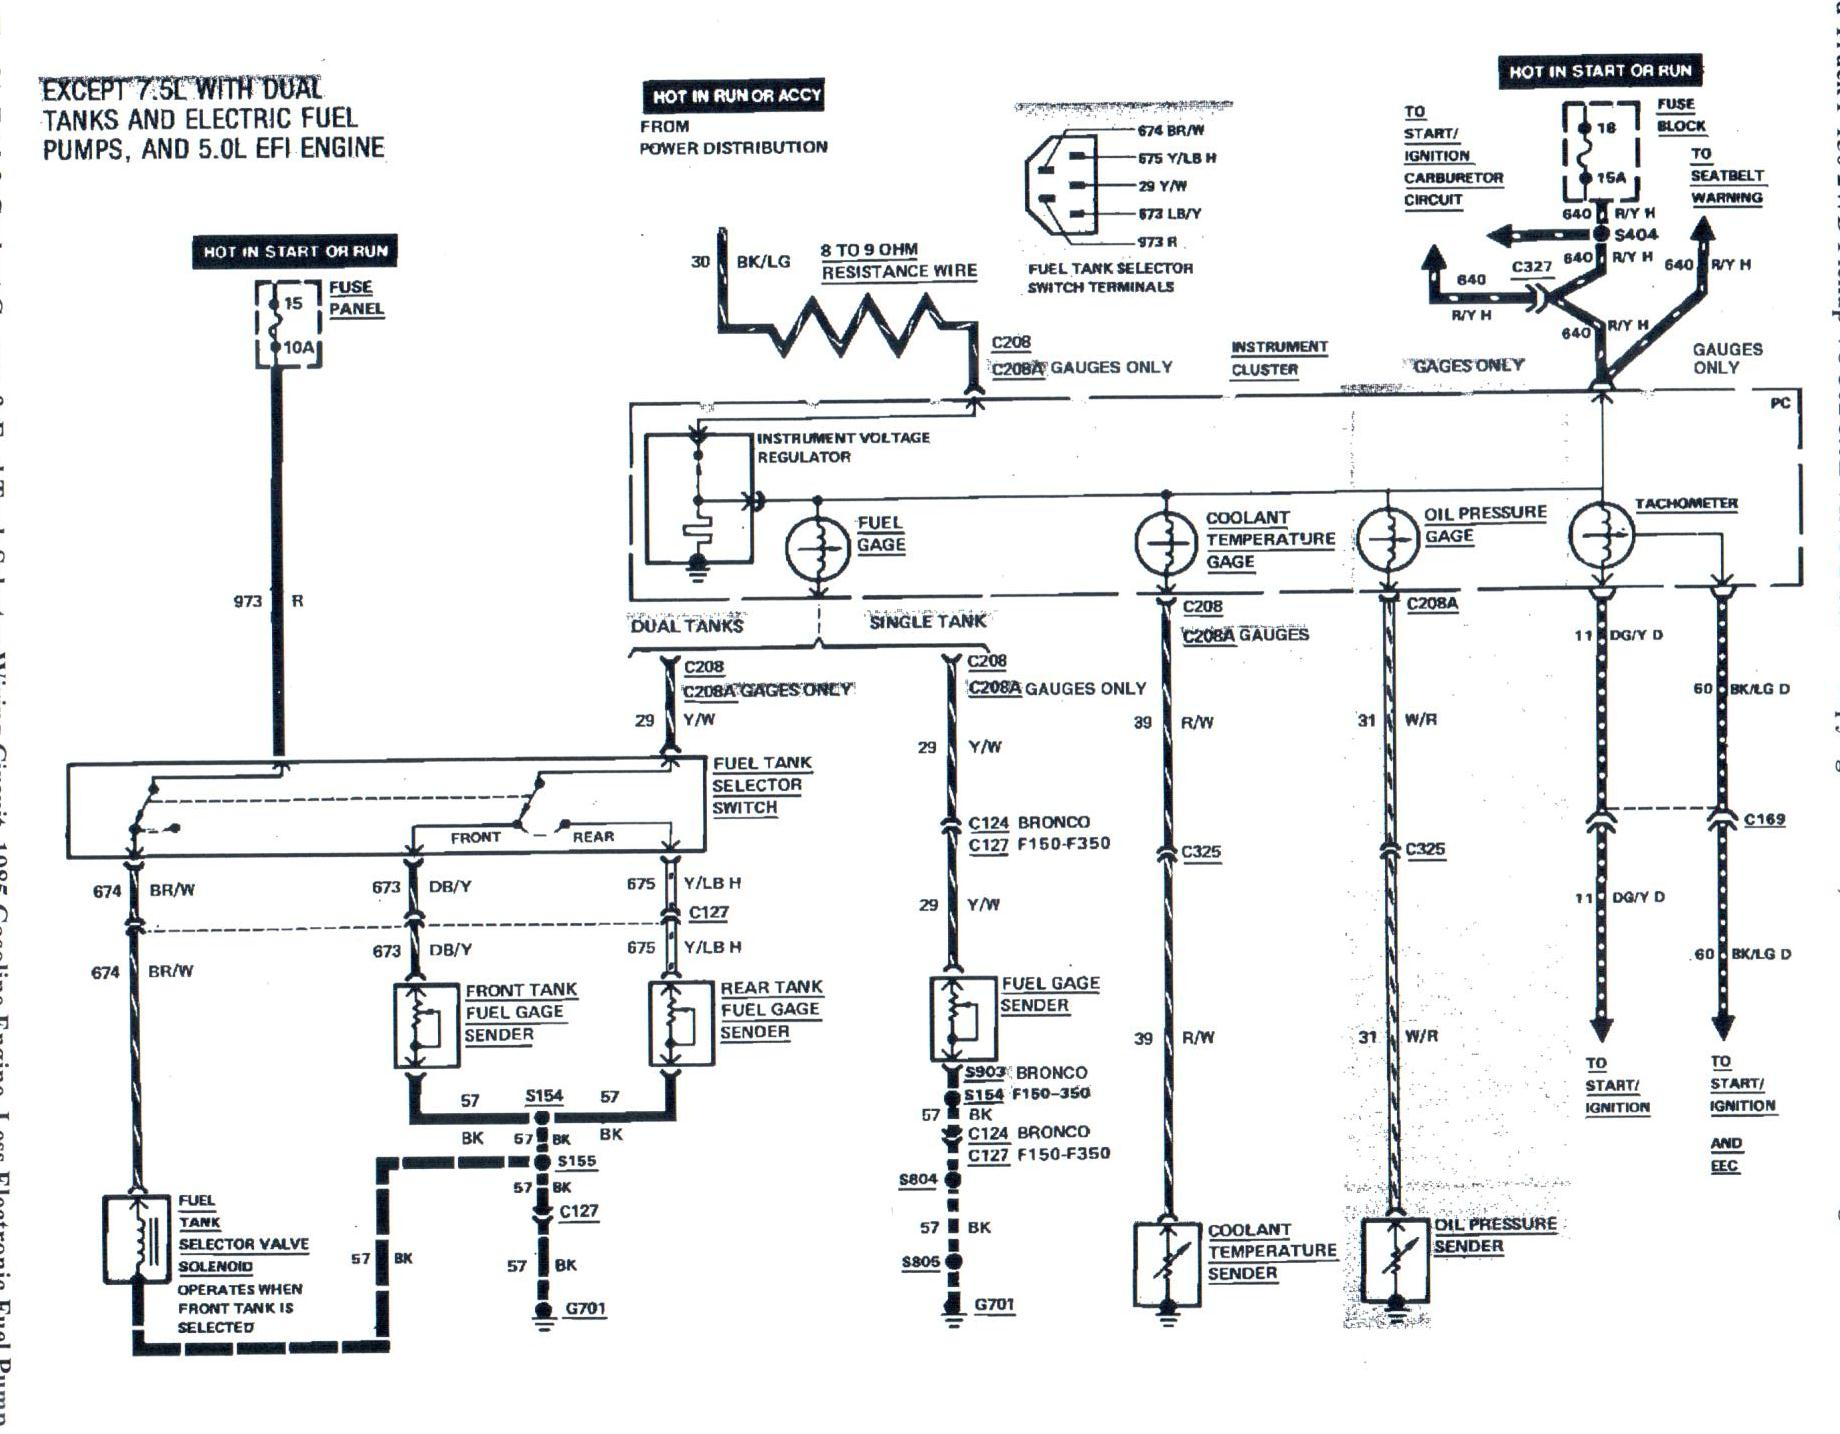 1985 ford f150 injector wiring diagram   38 wiring diagram